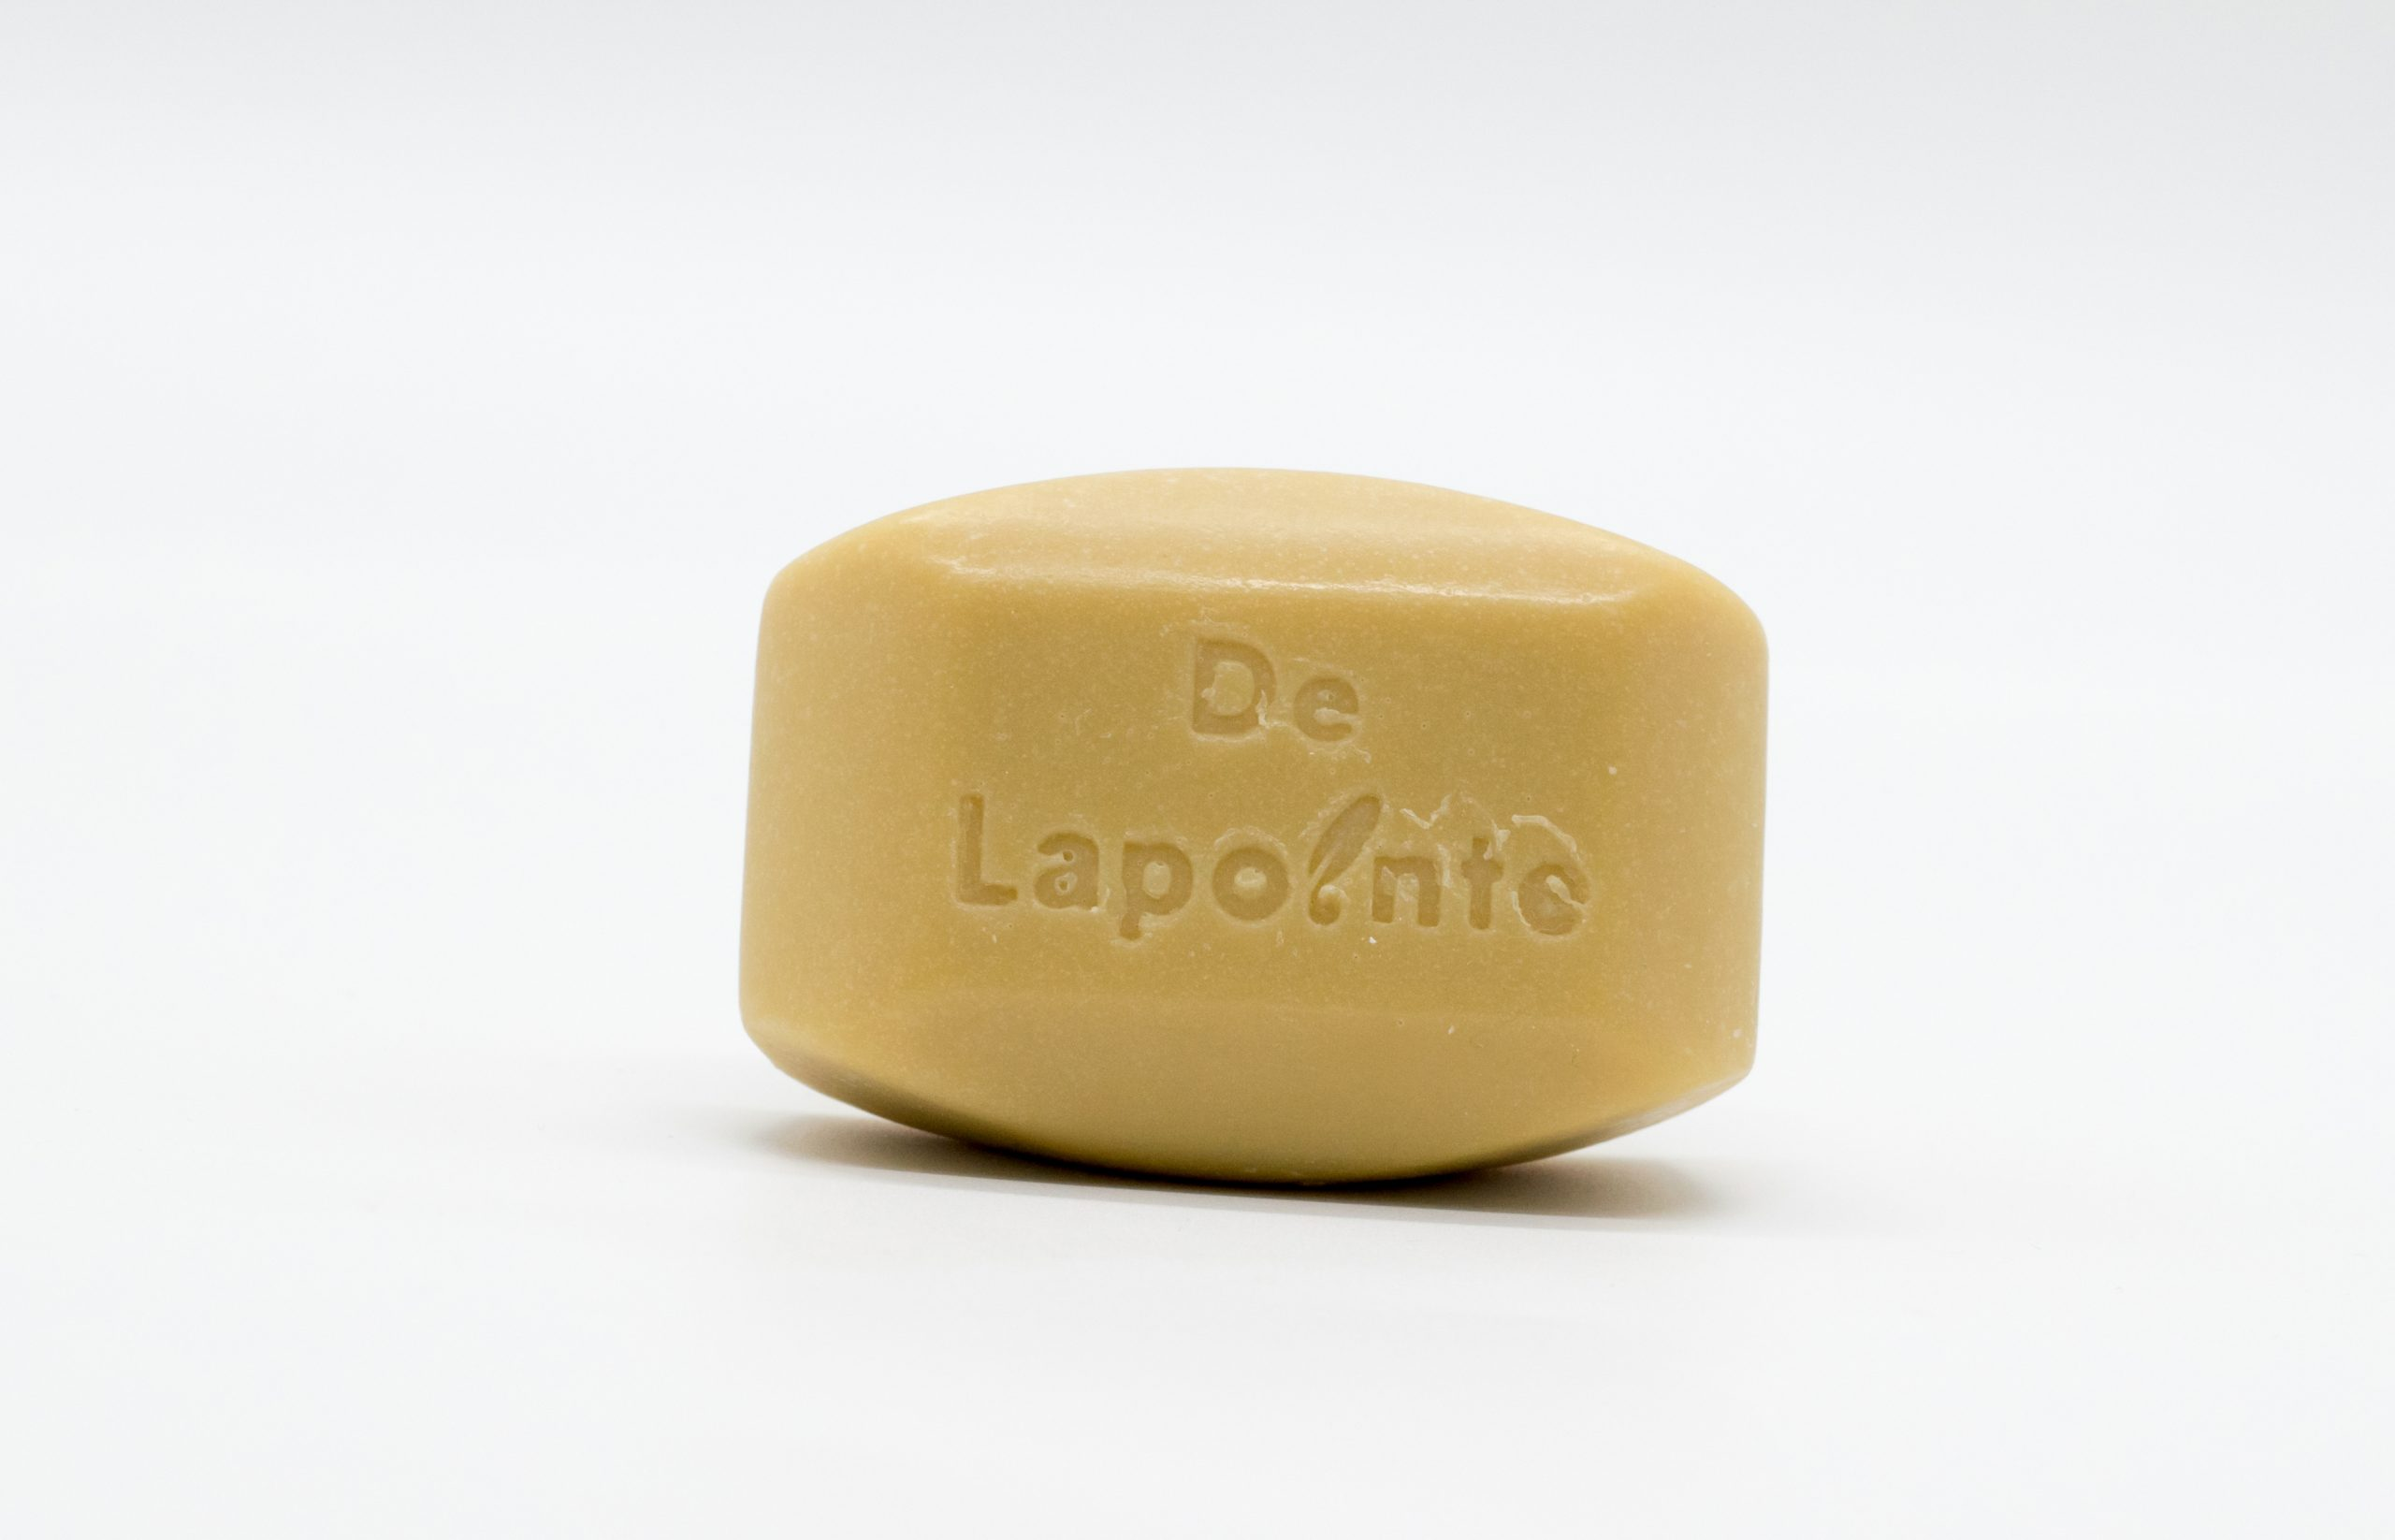 Organic patchouli sage soap with shea butter by Delapointe on Rosette Fair Trade online store